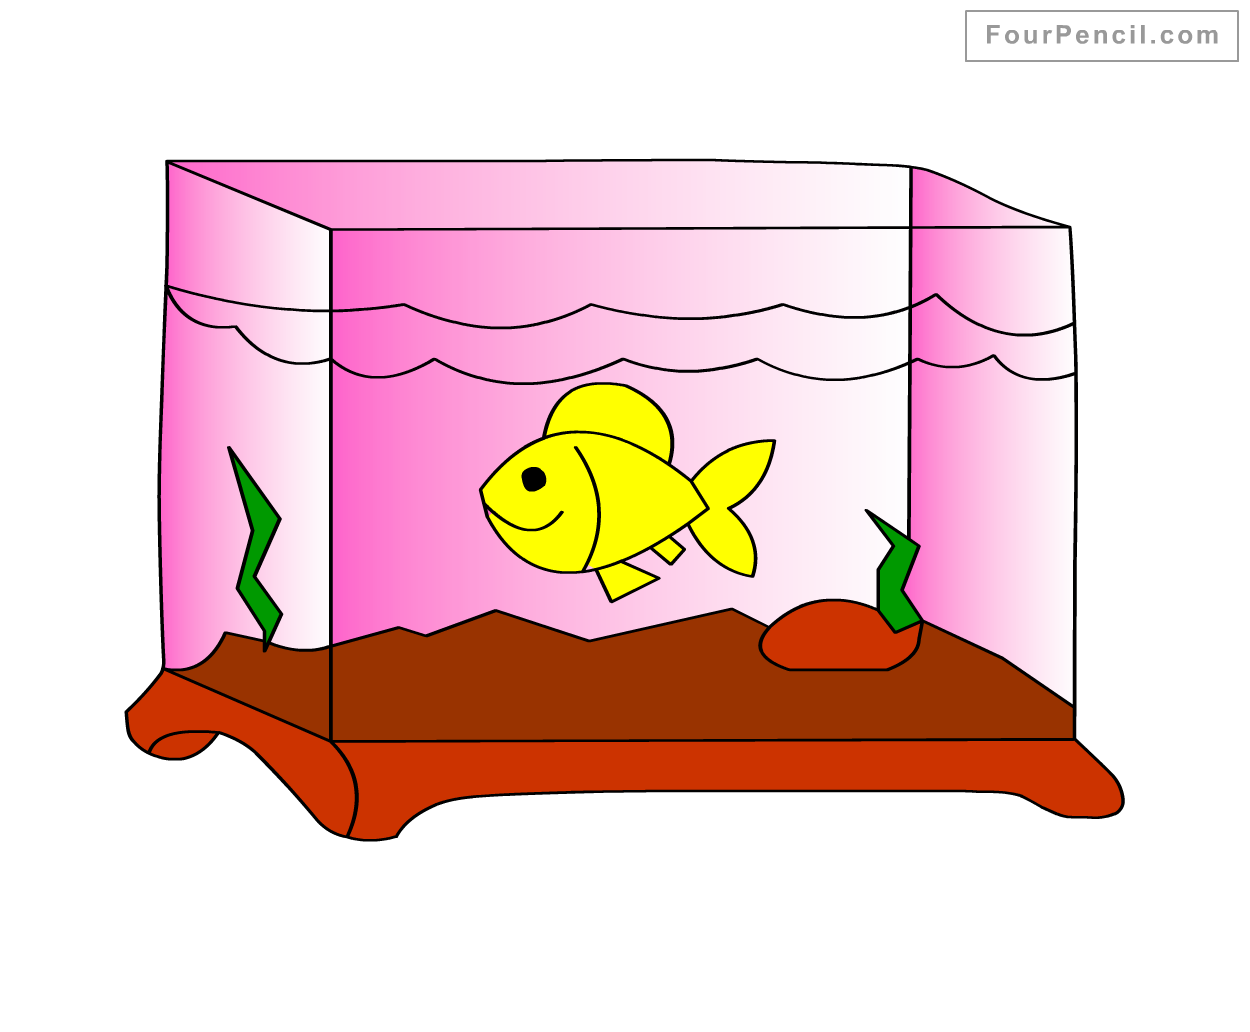 Fish tank drawing pictures -  Draw Fish Tank Slide 4 Draw Fish Tank Drawing How To Draw A